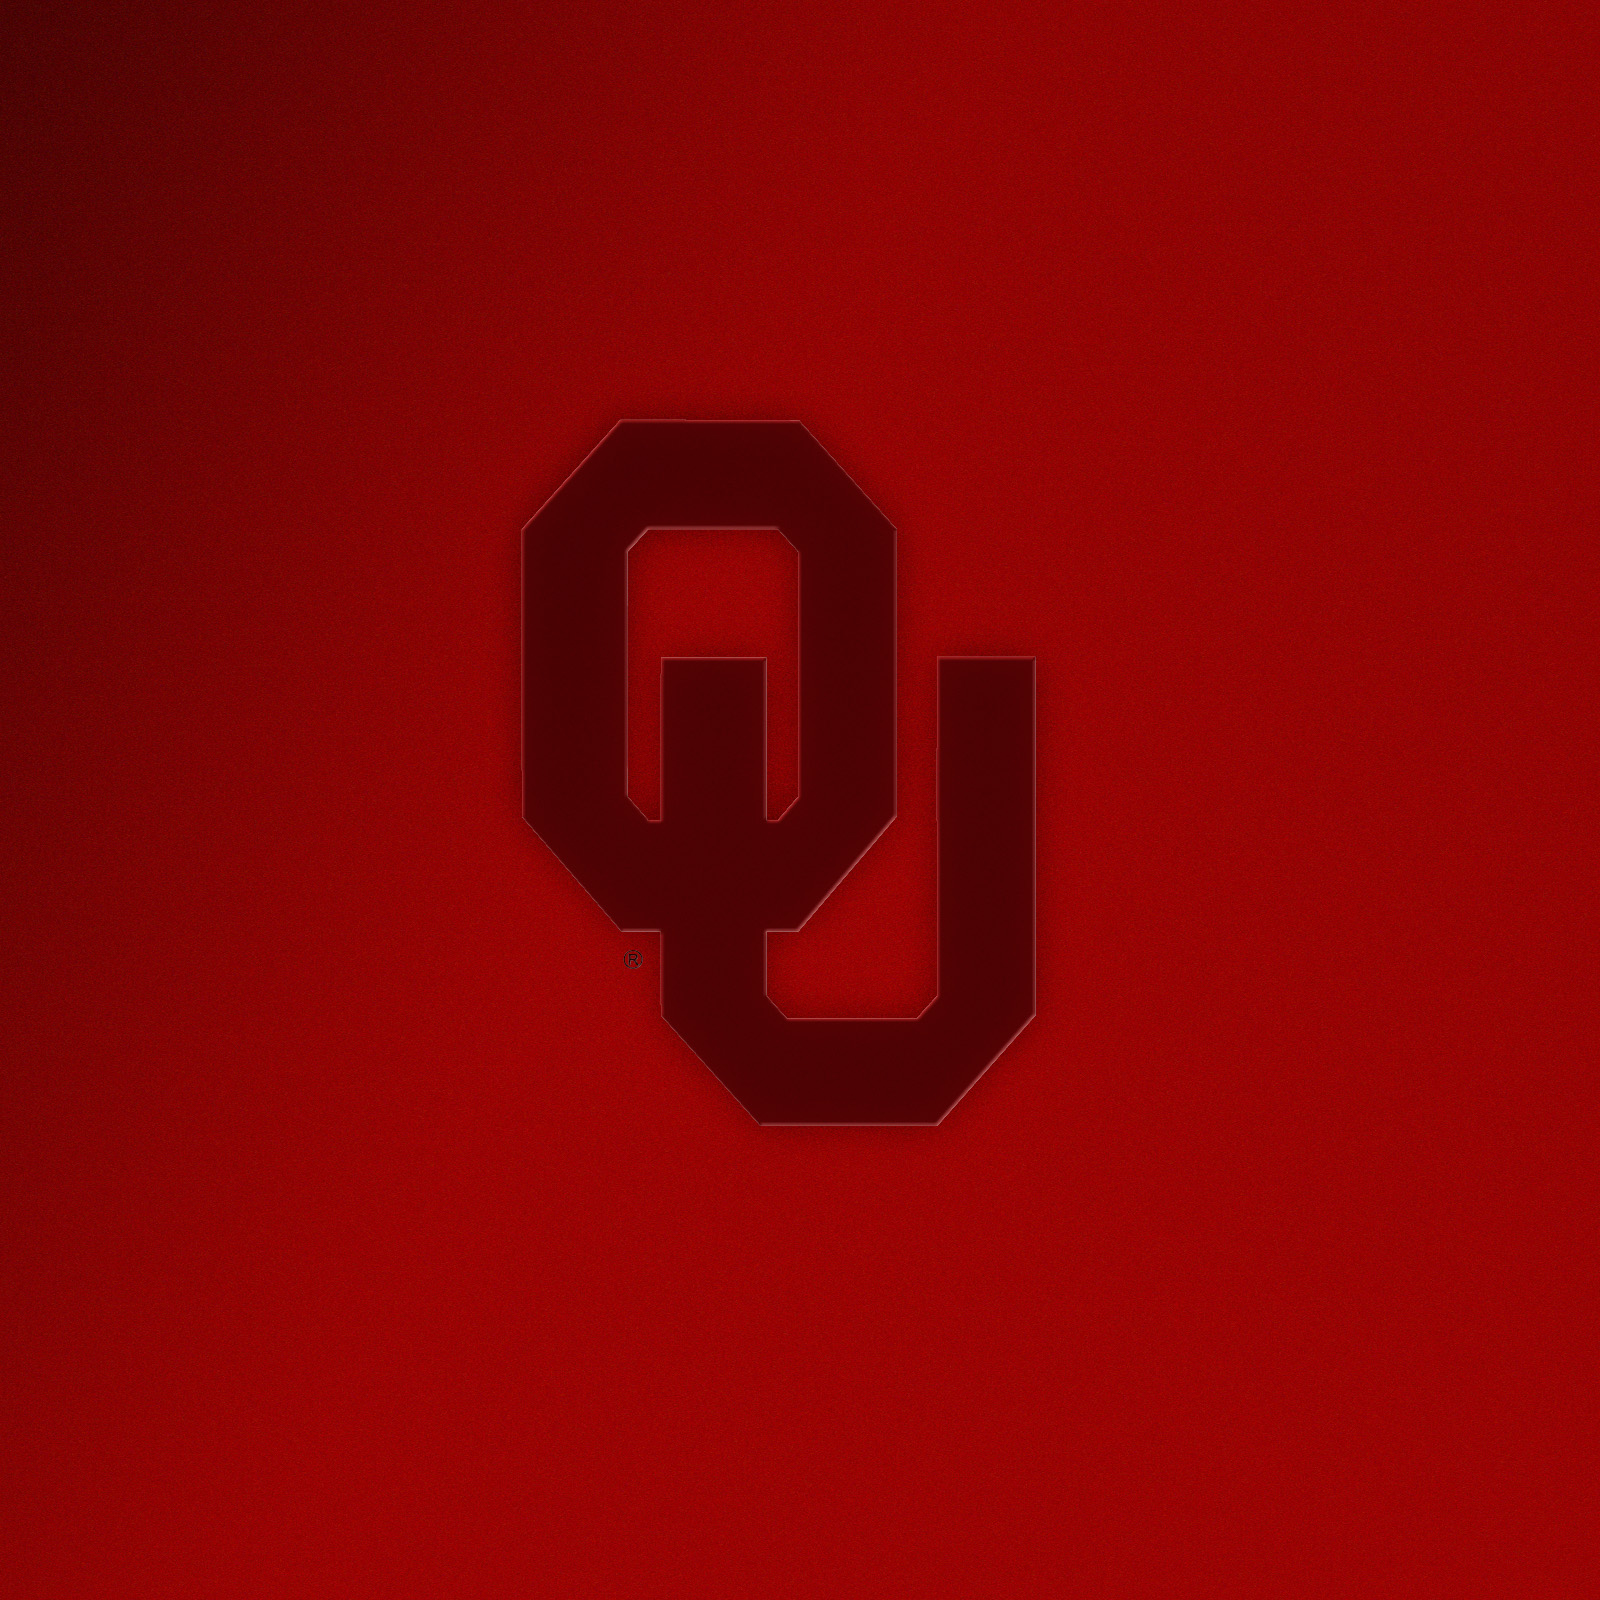 OU Wallpapers 1600x1600